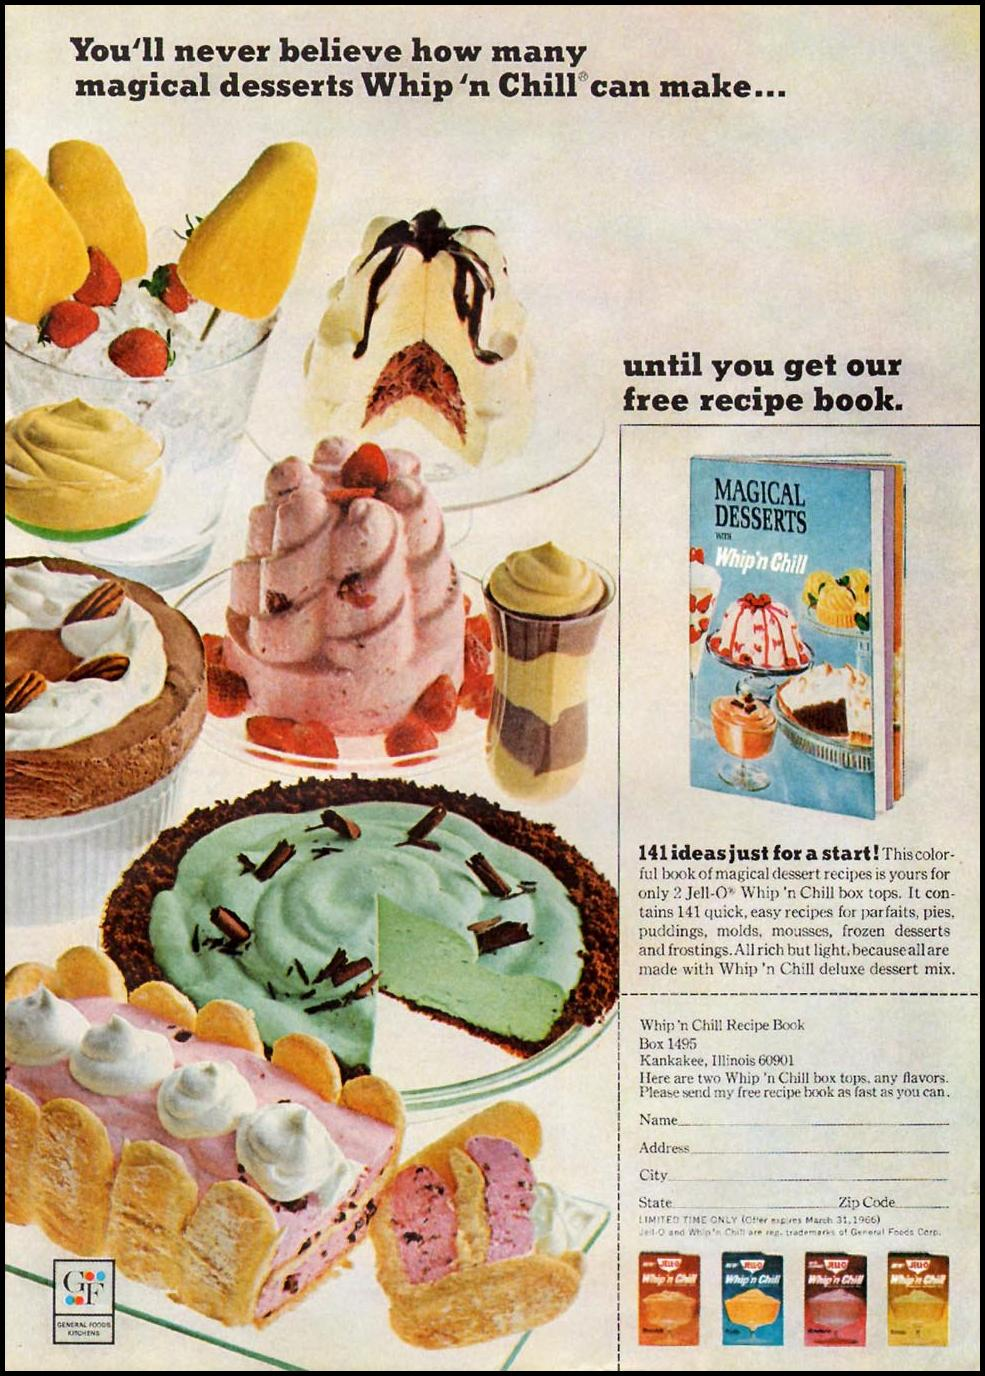 JELL-O WHIP 'N CHILL